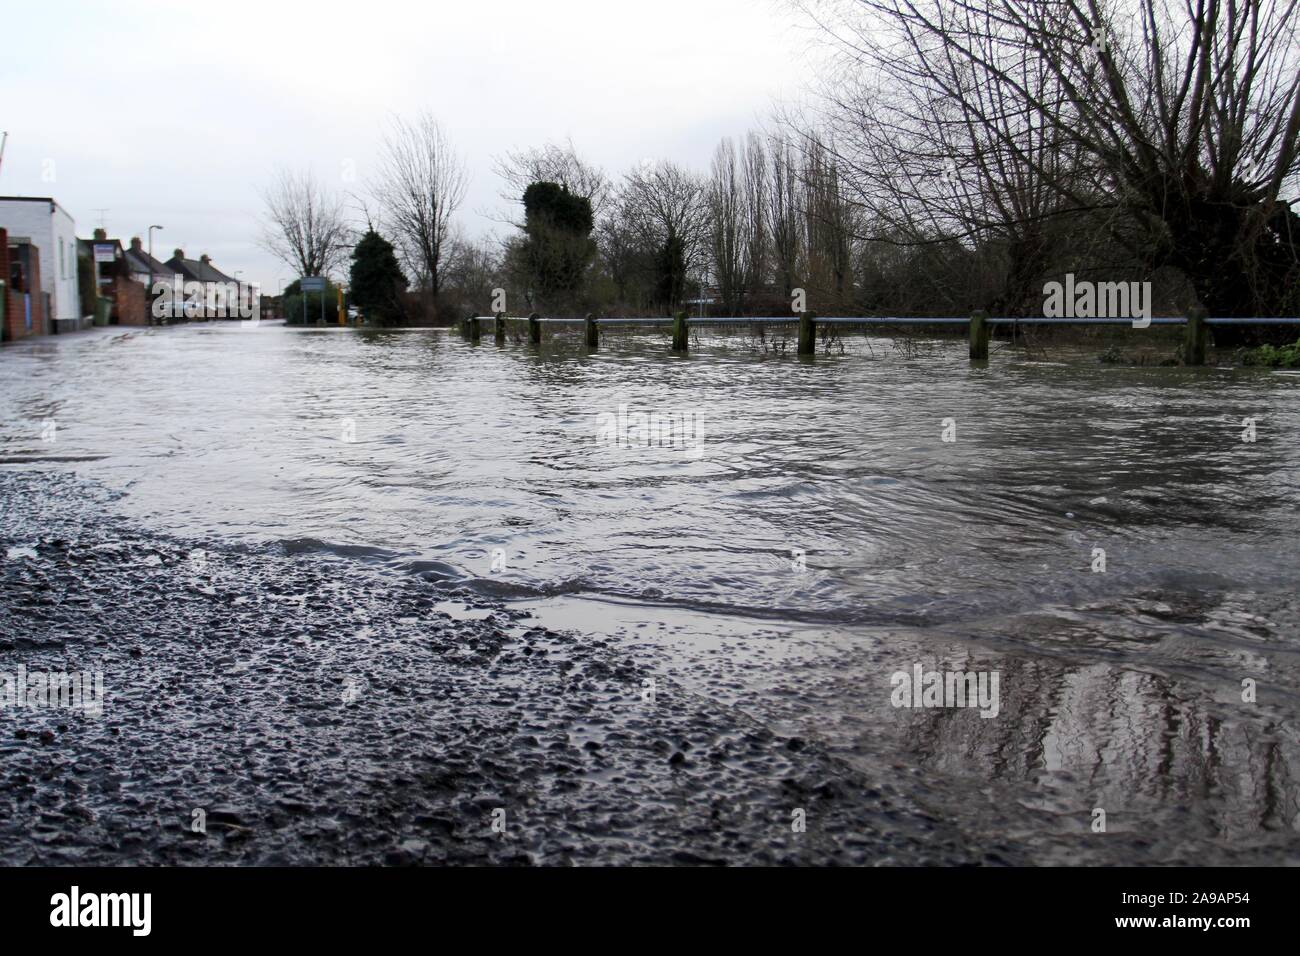 Flooding across Gloucestershire - Undated archive images  Picture by Antony Thompson - Thousand Word Media, NO SALES, NO SYNDICATION. Contact for more Stock Photo